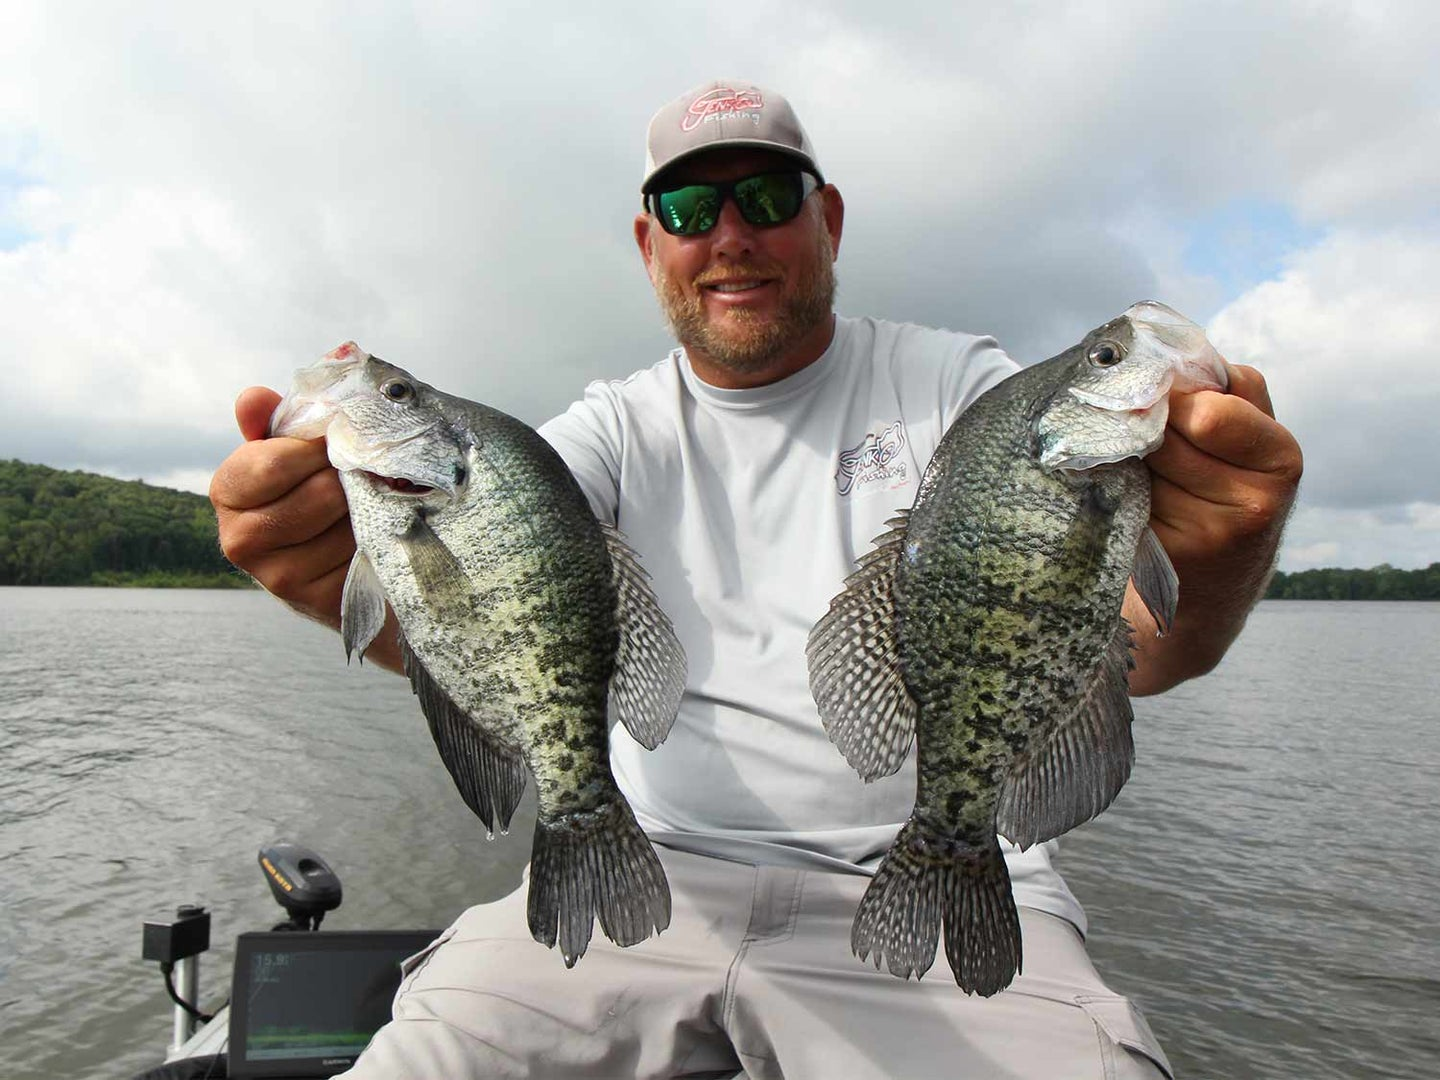 A male angler holding up two large crappie fish.